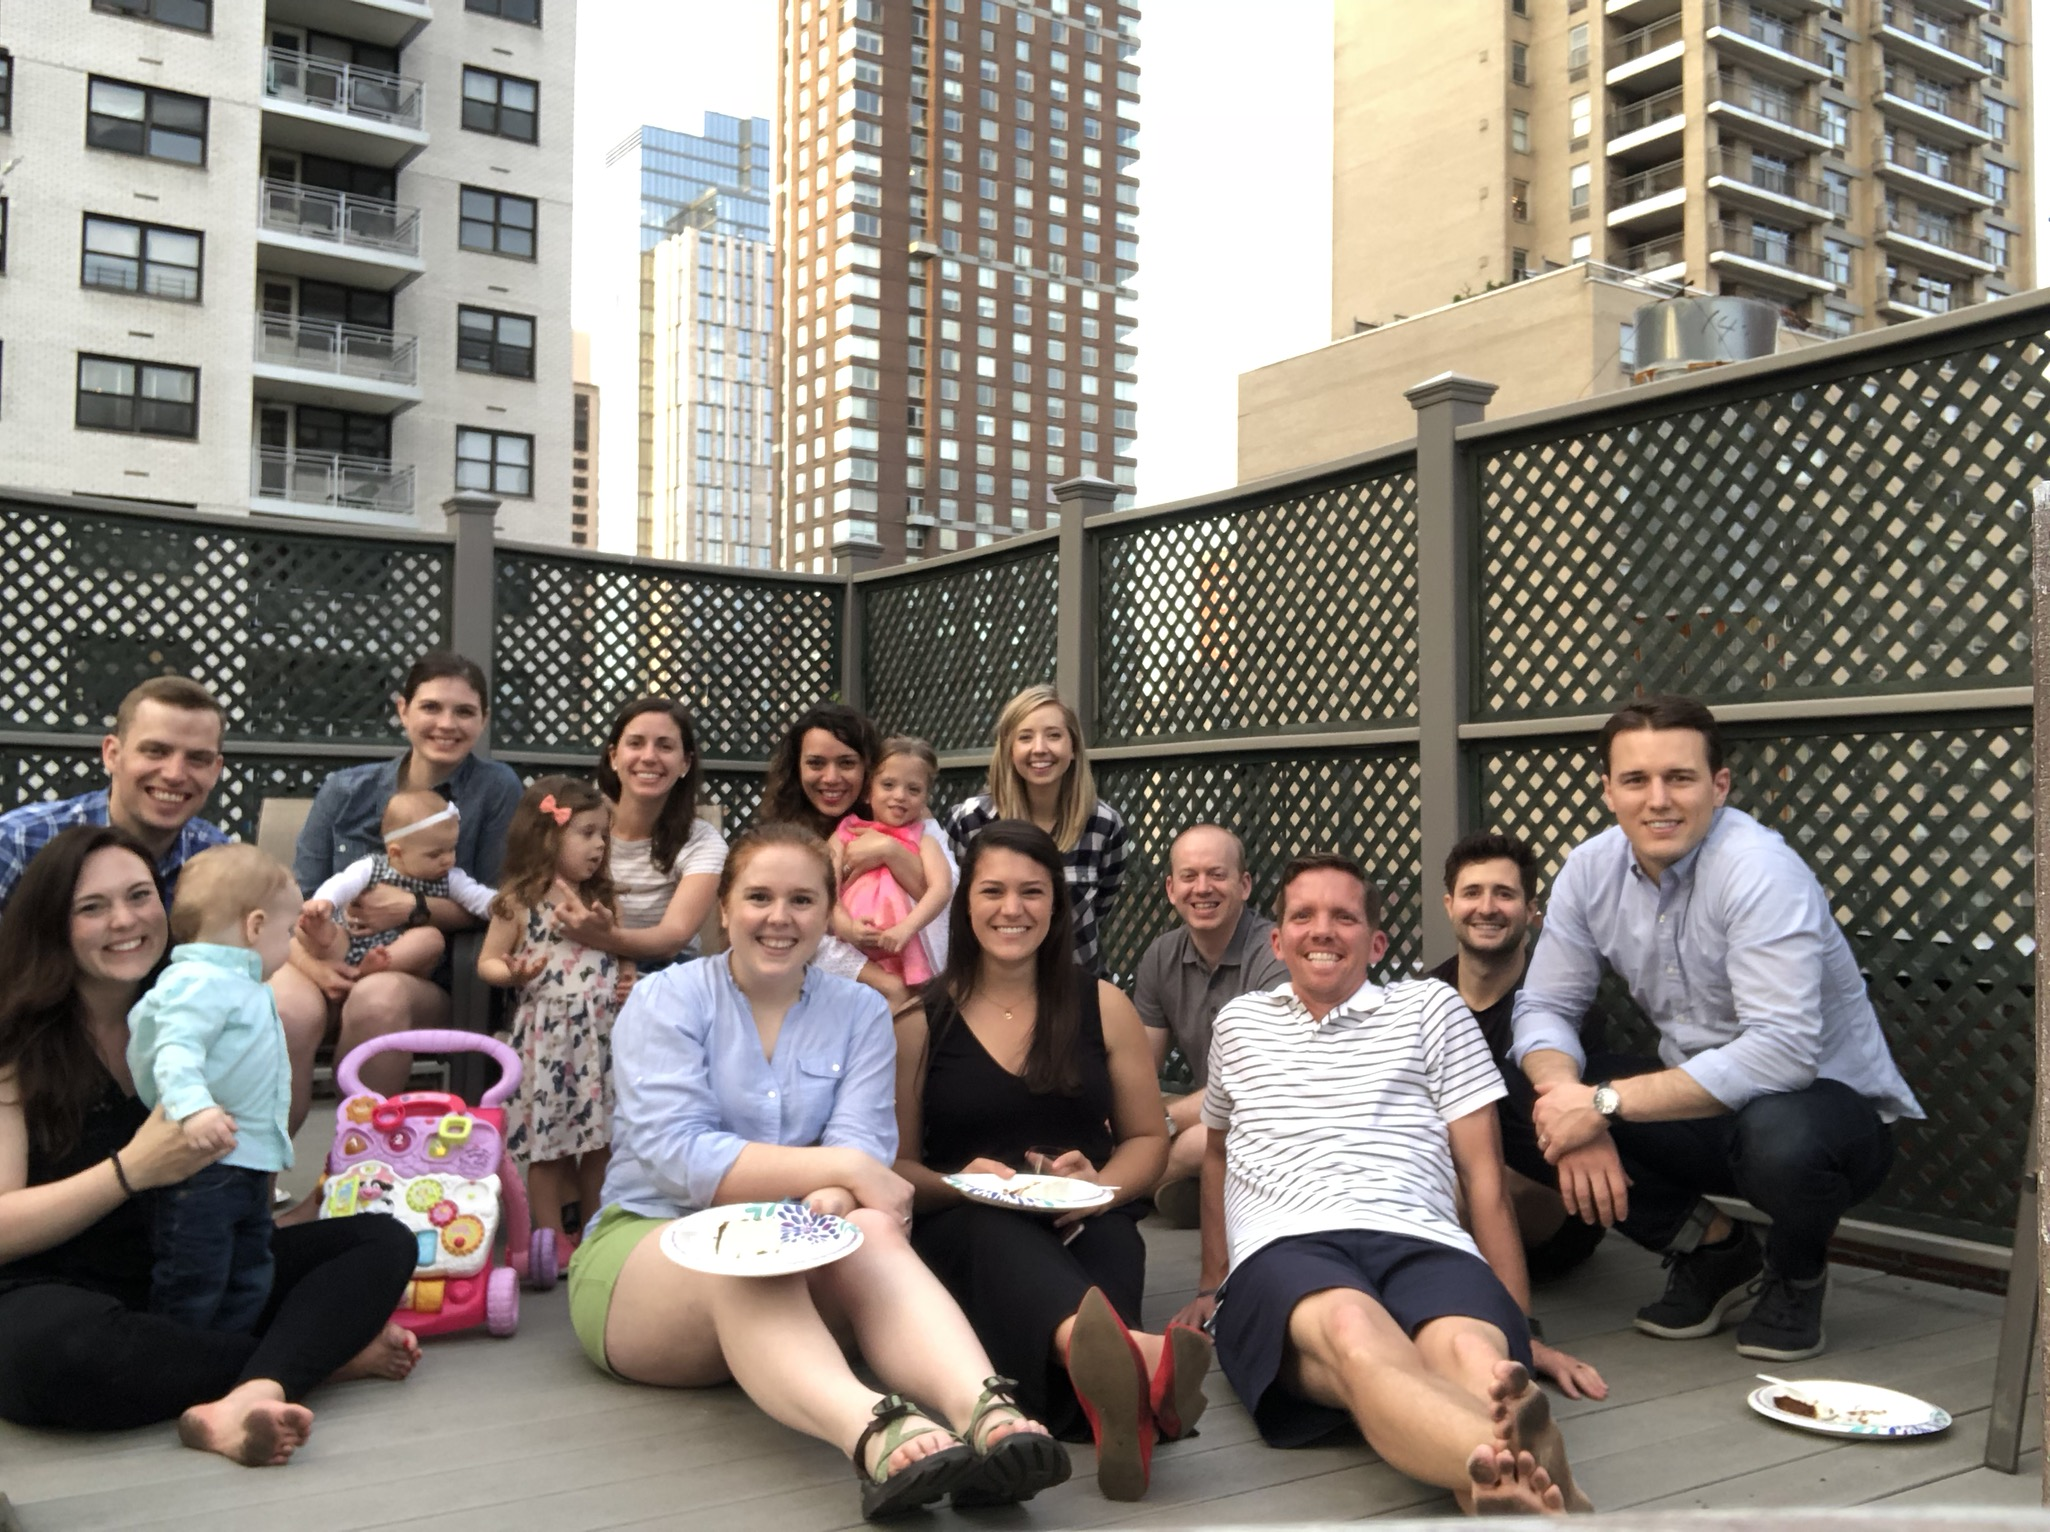 Such a fun gathering - we miss Hudson and the Braun family!